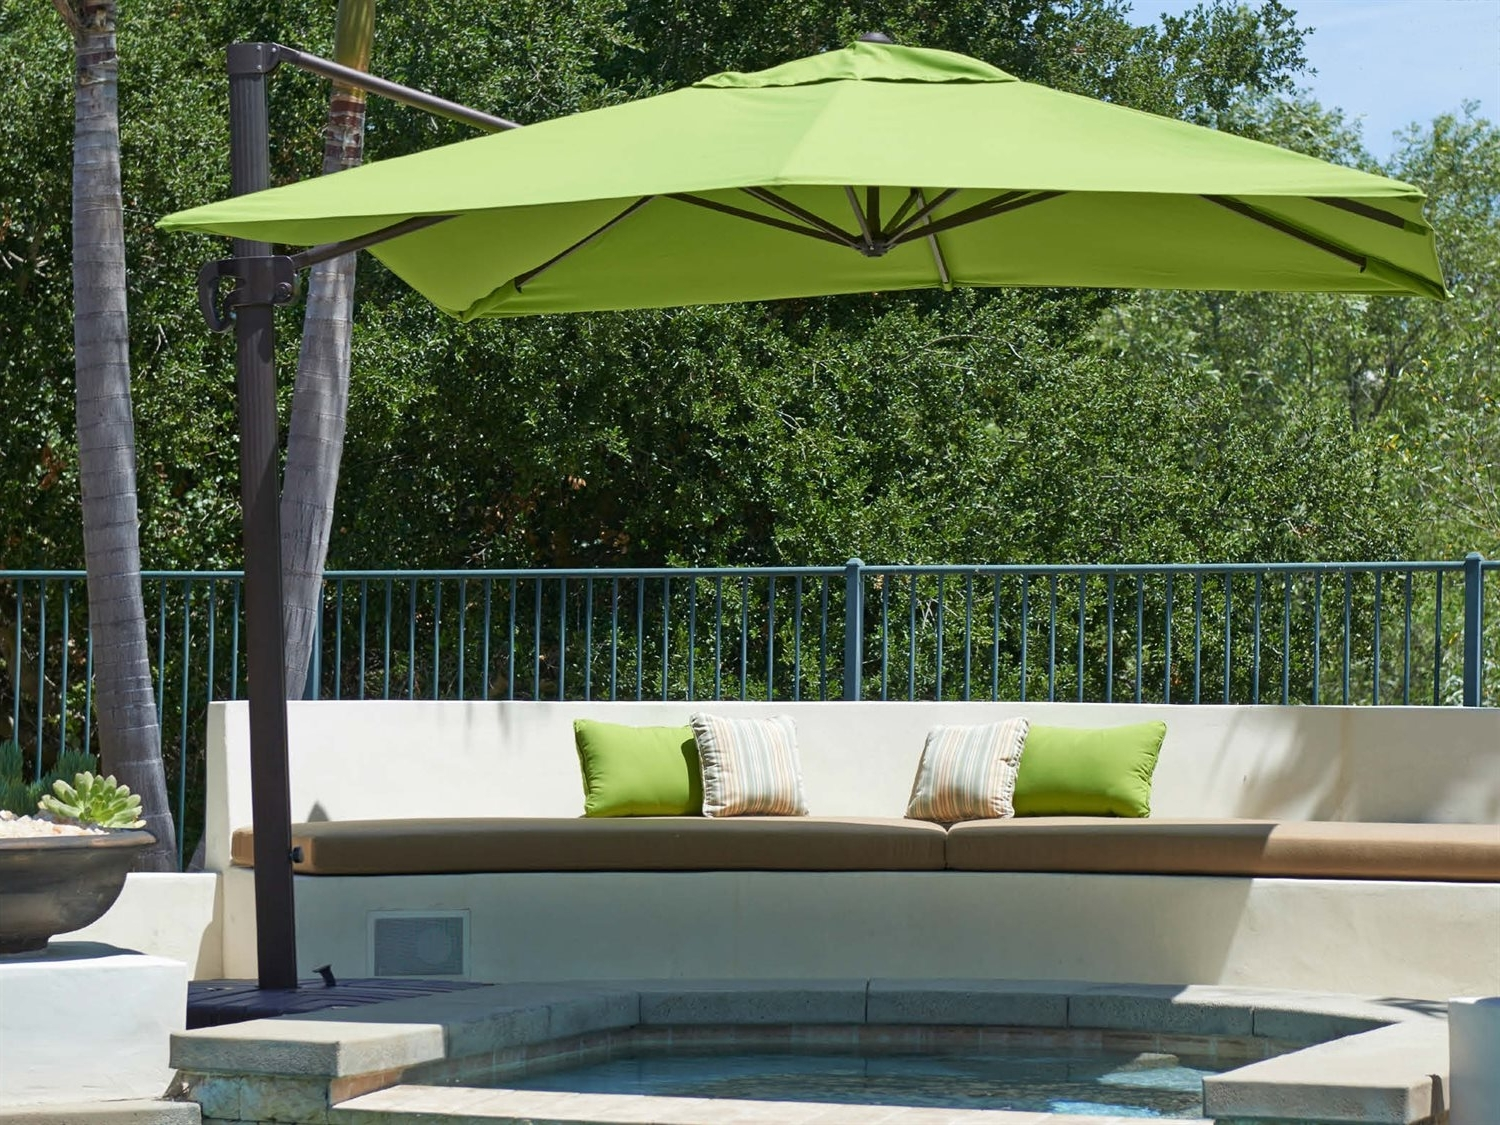 Most Recently Released Rectangle Patio Umbrellas Intended For Garden: Enchanting Outdoor Patio Decor Ideas With Patio Umbrellas (View 9 of 20)